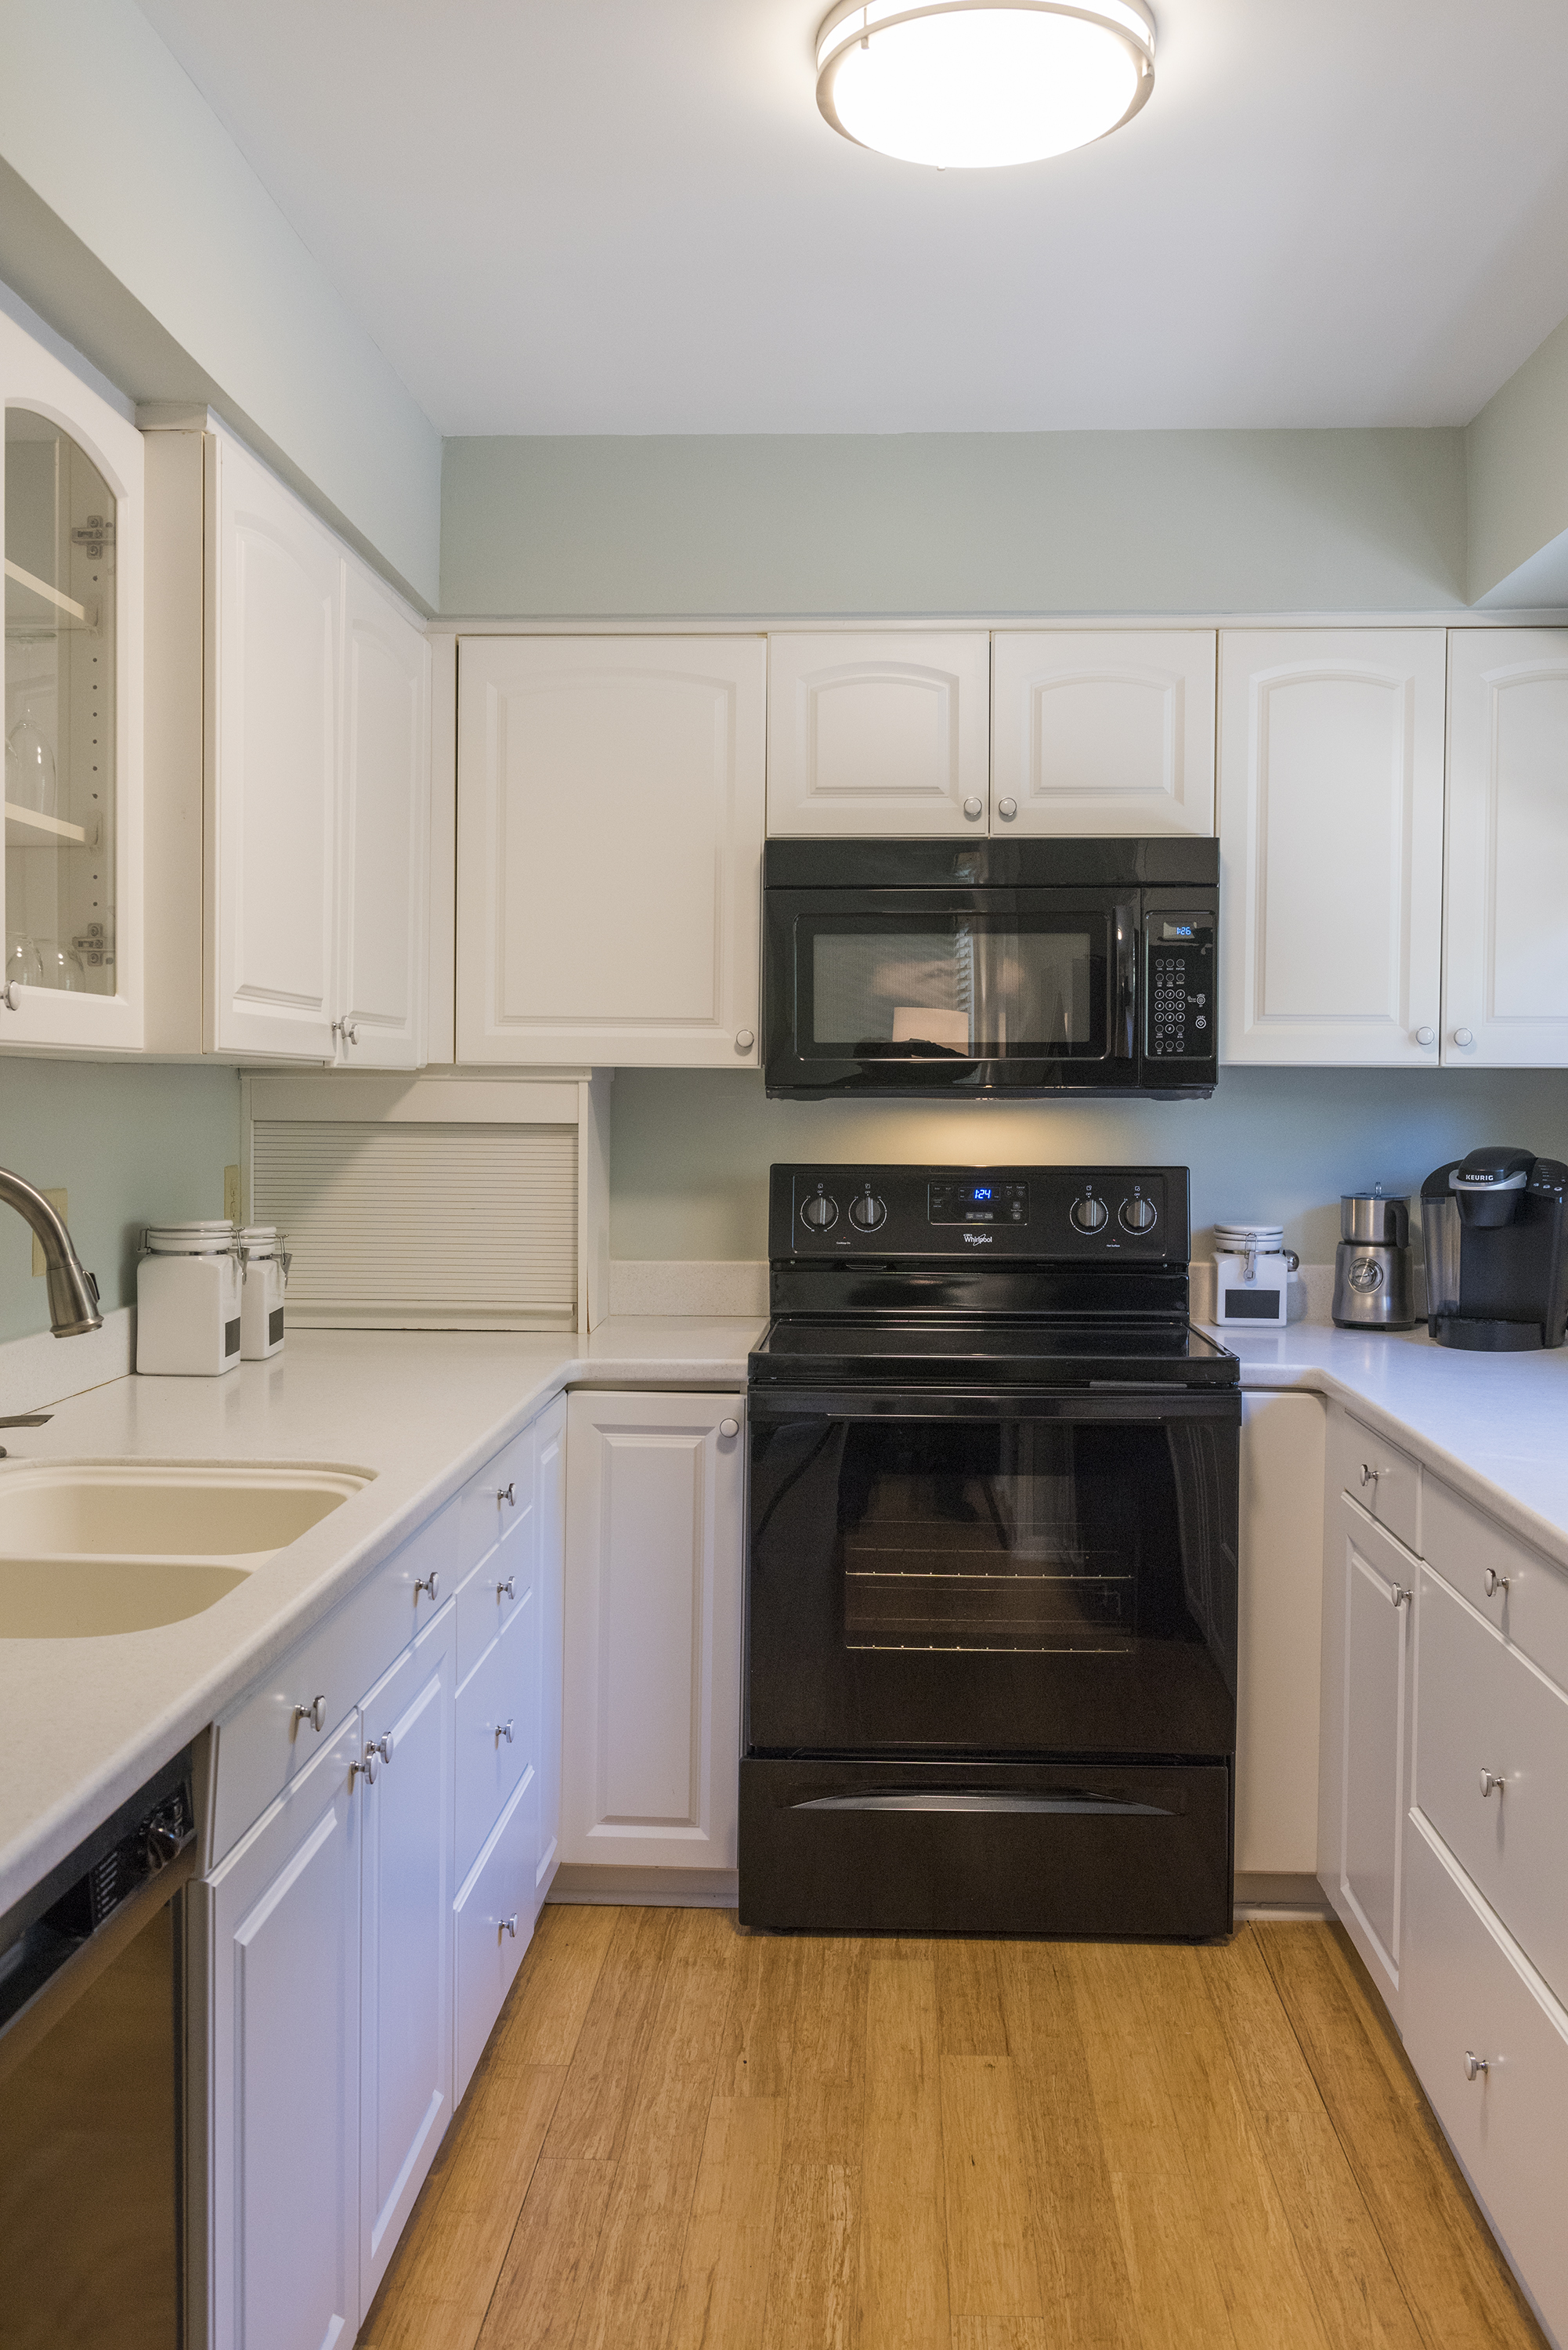 The fully equipped kitchen features Corian counters, Whirpool appliances and a Keurig coffee maker.